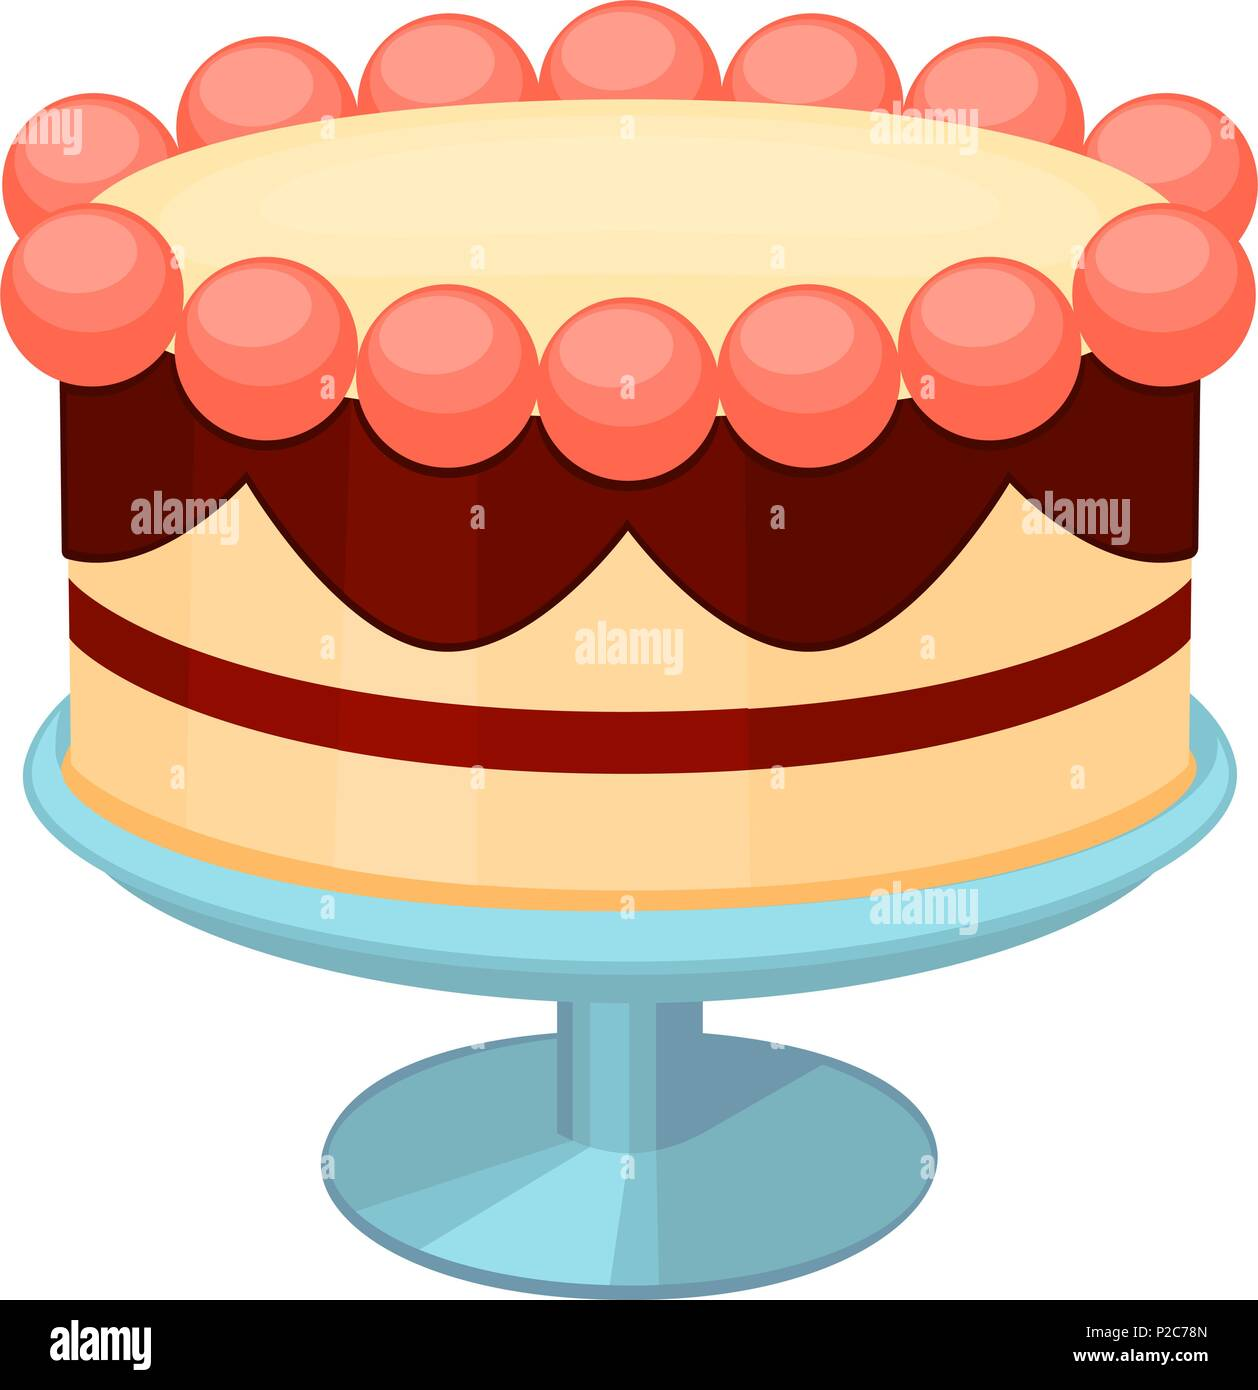 Wedding Cake Stand Stock Vector Images - Alamy